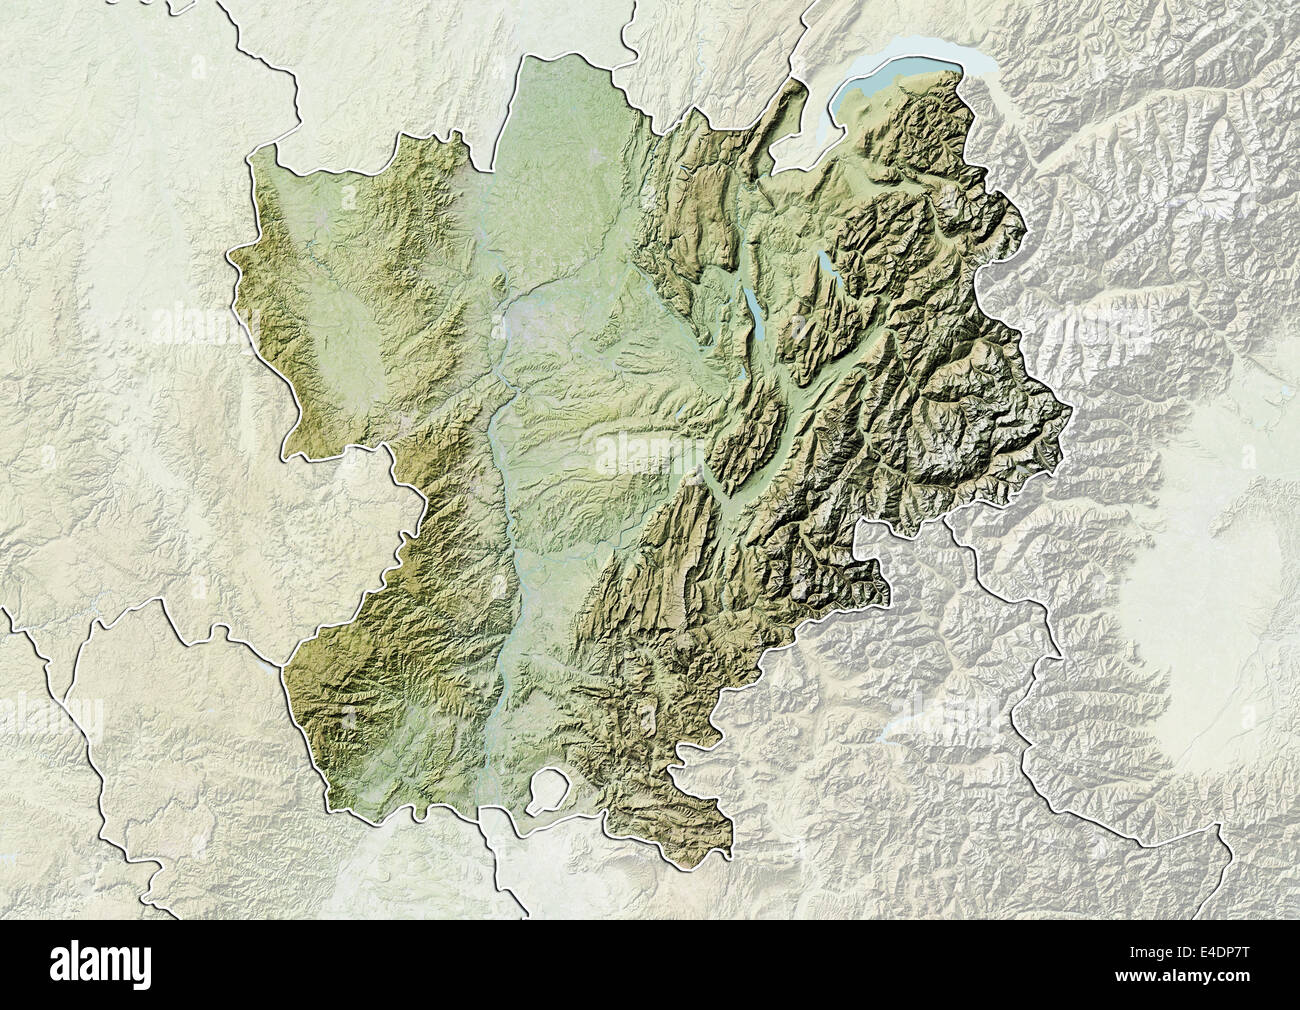 Region Of Rhone Alpes France Relief Map Stock Photo Alamy